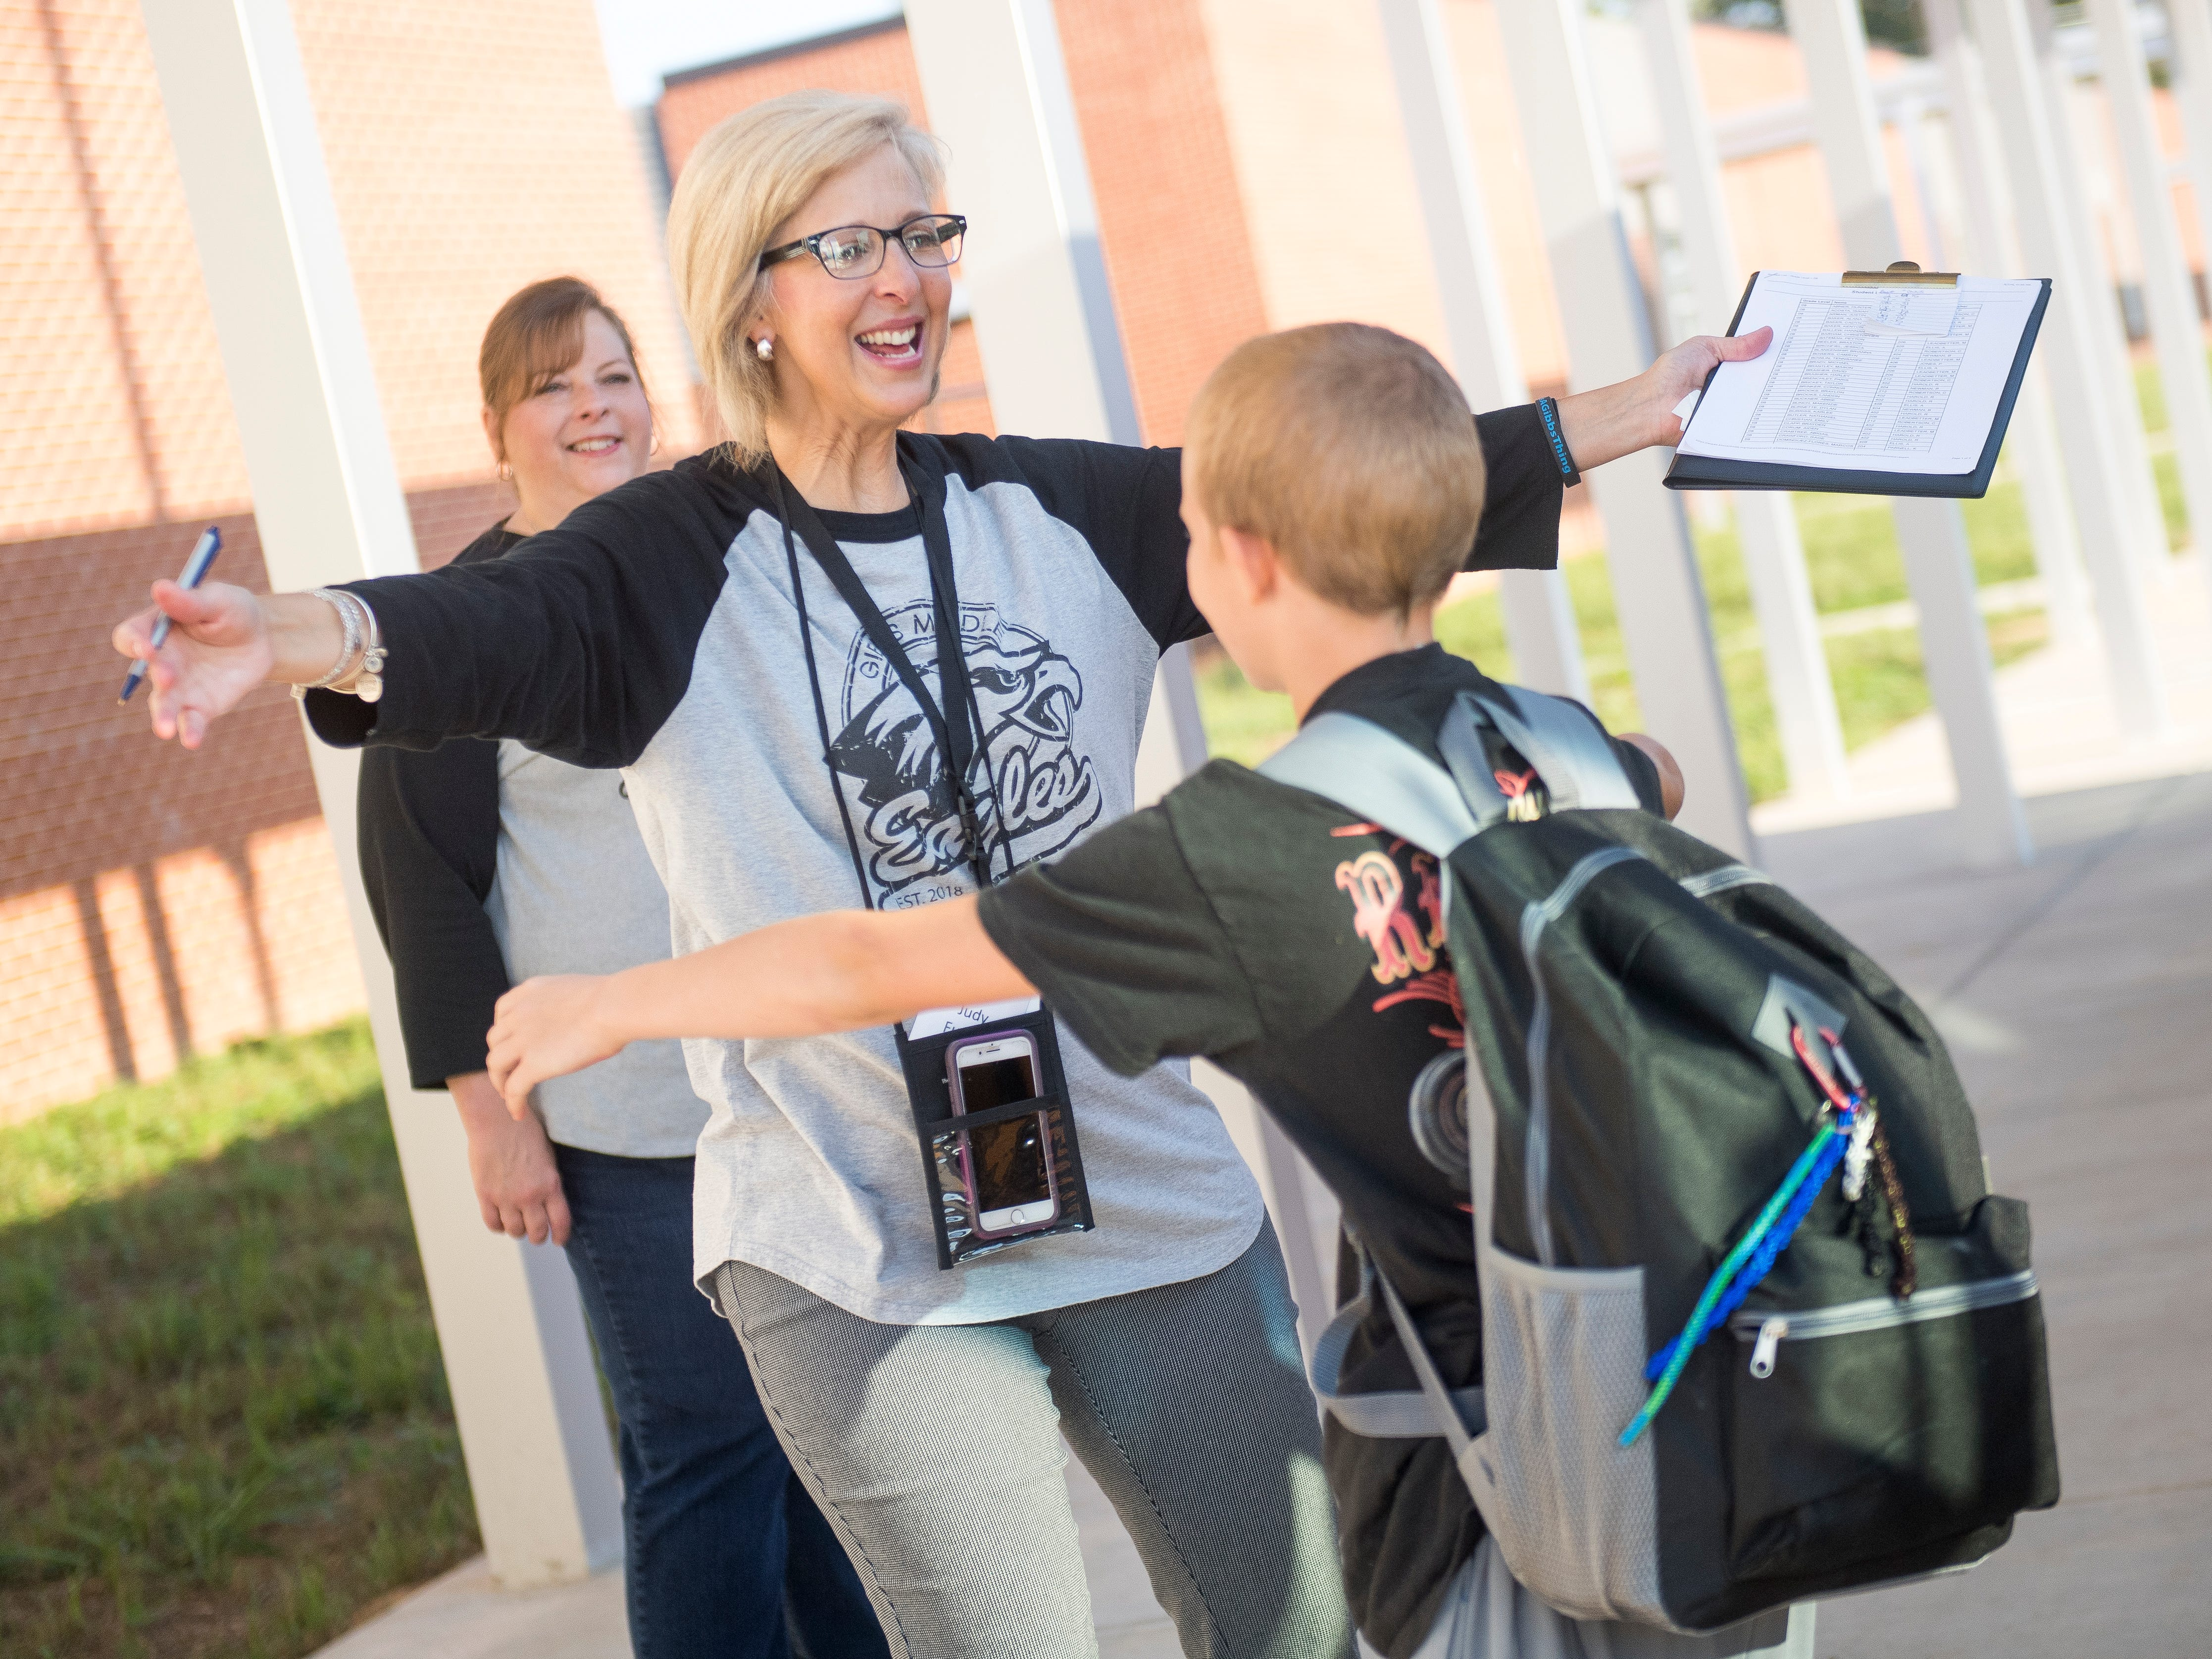 Reading intervention teacher Judy Fugate greets a student with a hug as they enter the new Gibbs Middle School for the first day of school on Wednesday, August 8, 2018.